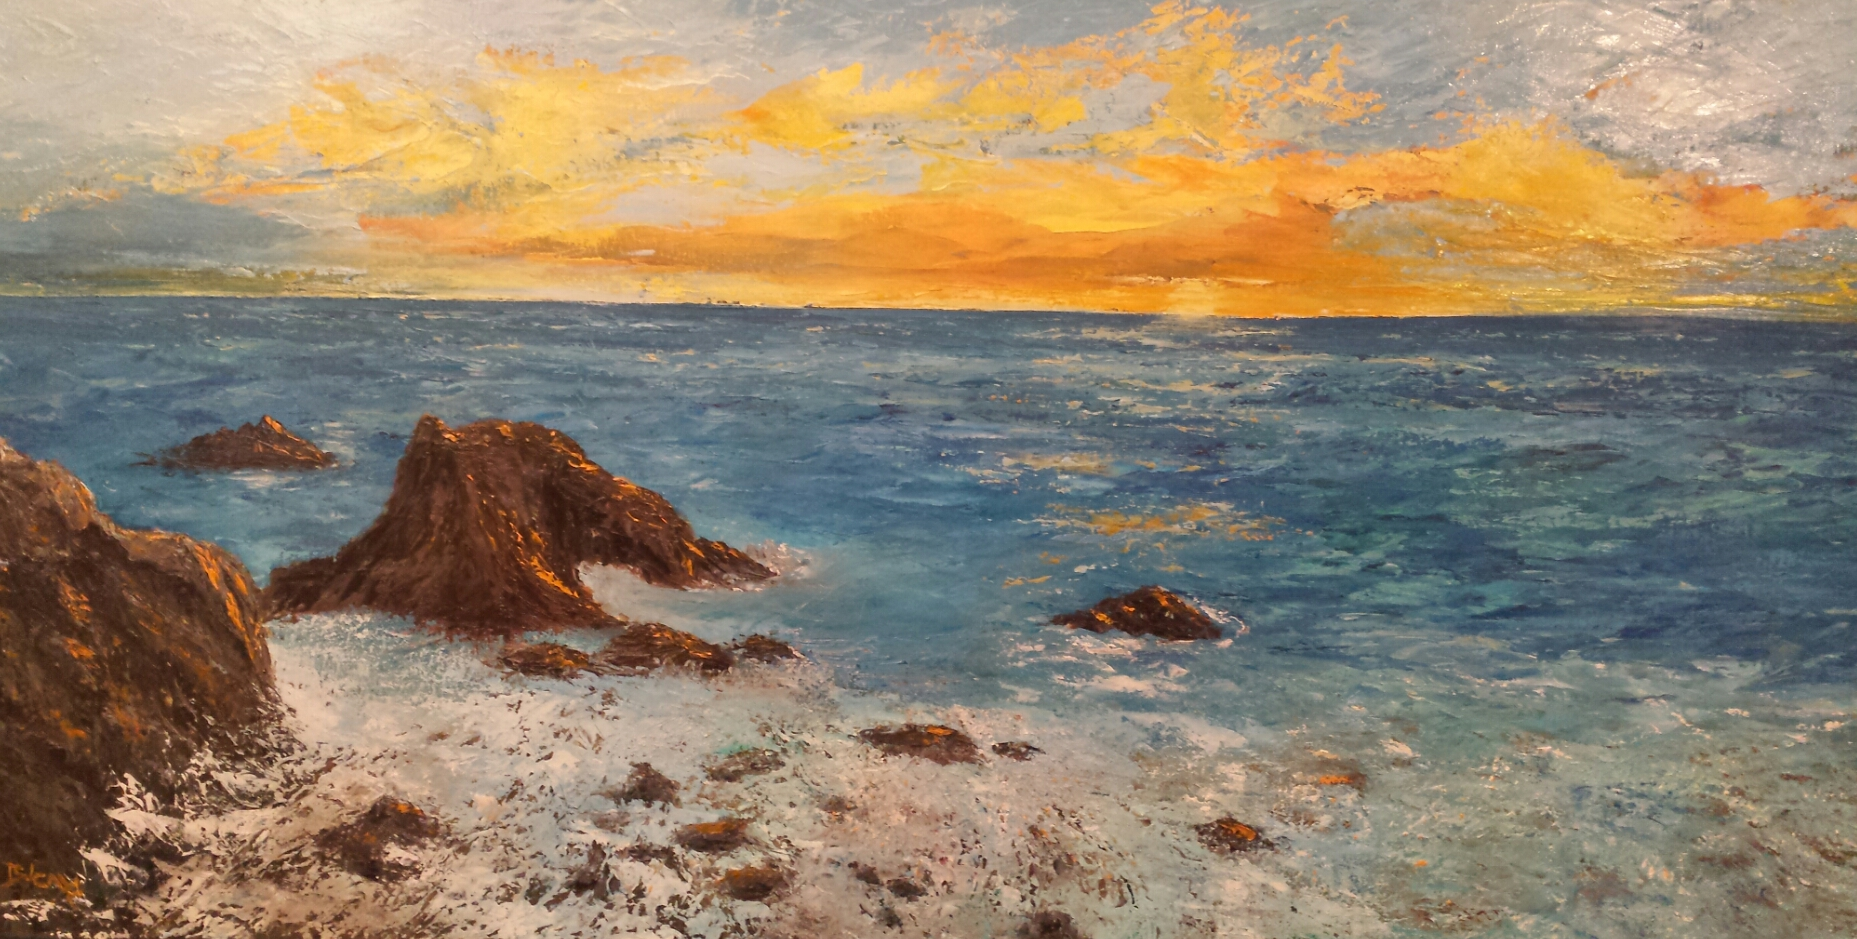 Sunset in the Caribbean - sold